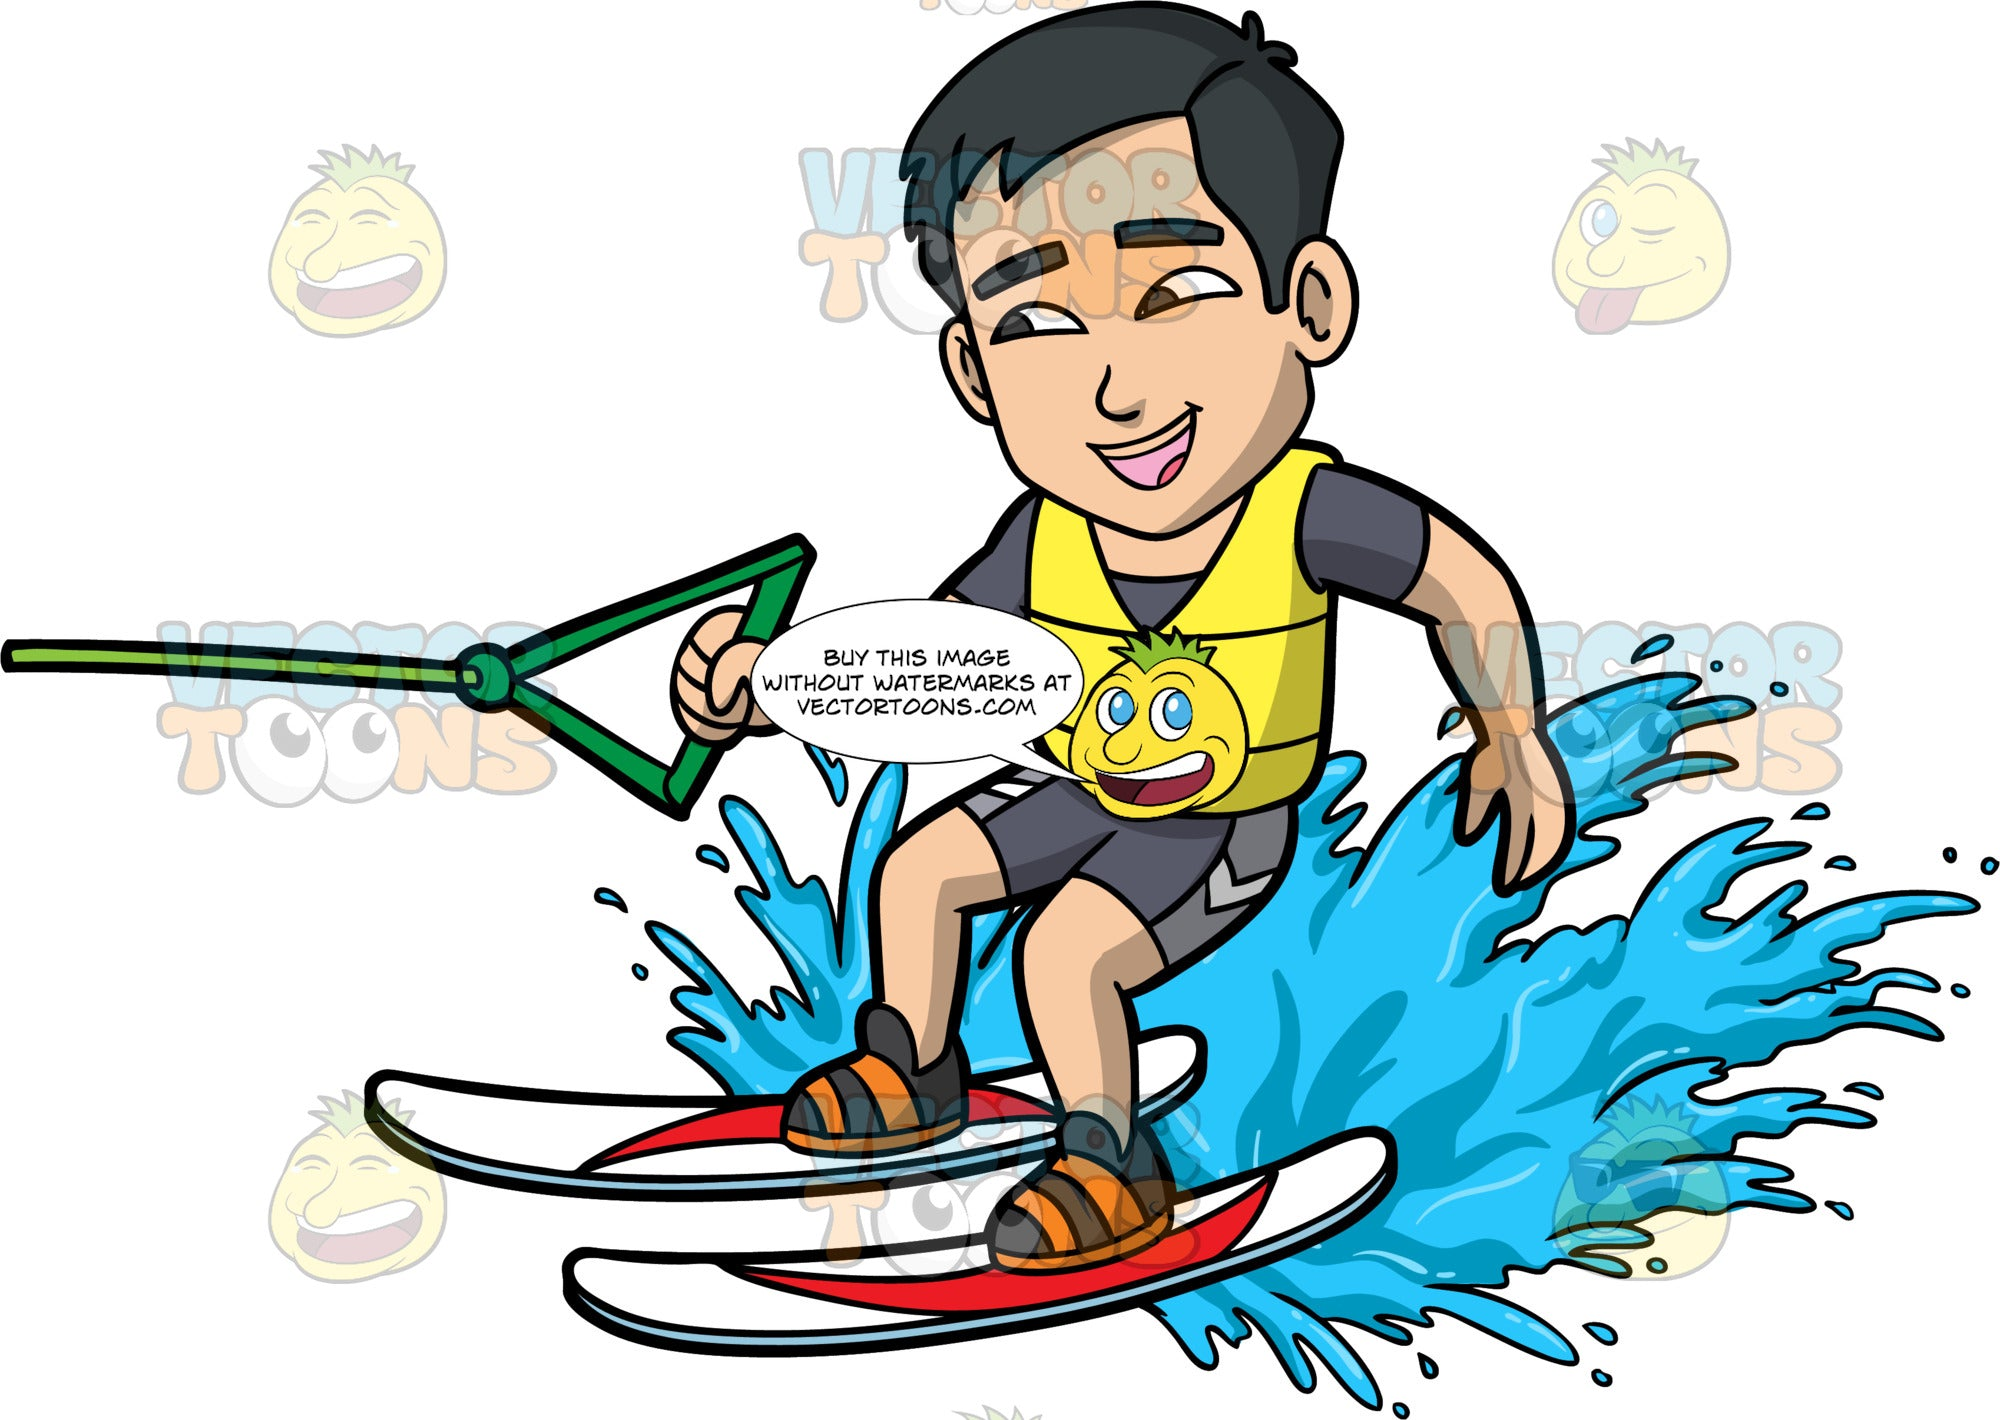 Kevin Having Fun Water Skiing. An Asian man wearing a dark gray wet suit and a yellow life jacket, holds onto a green handle as he is pulled behind a boat on his water skis